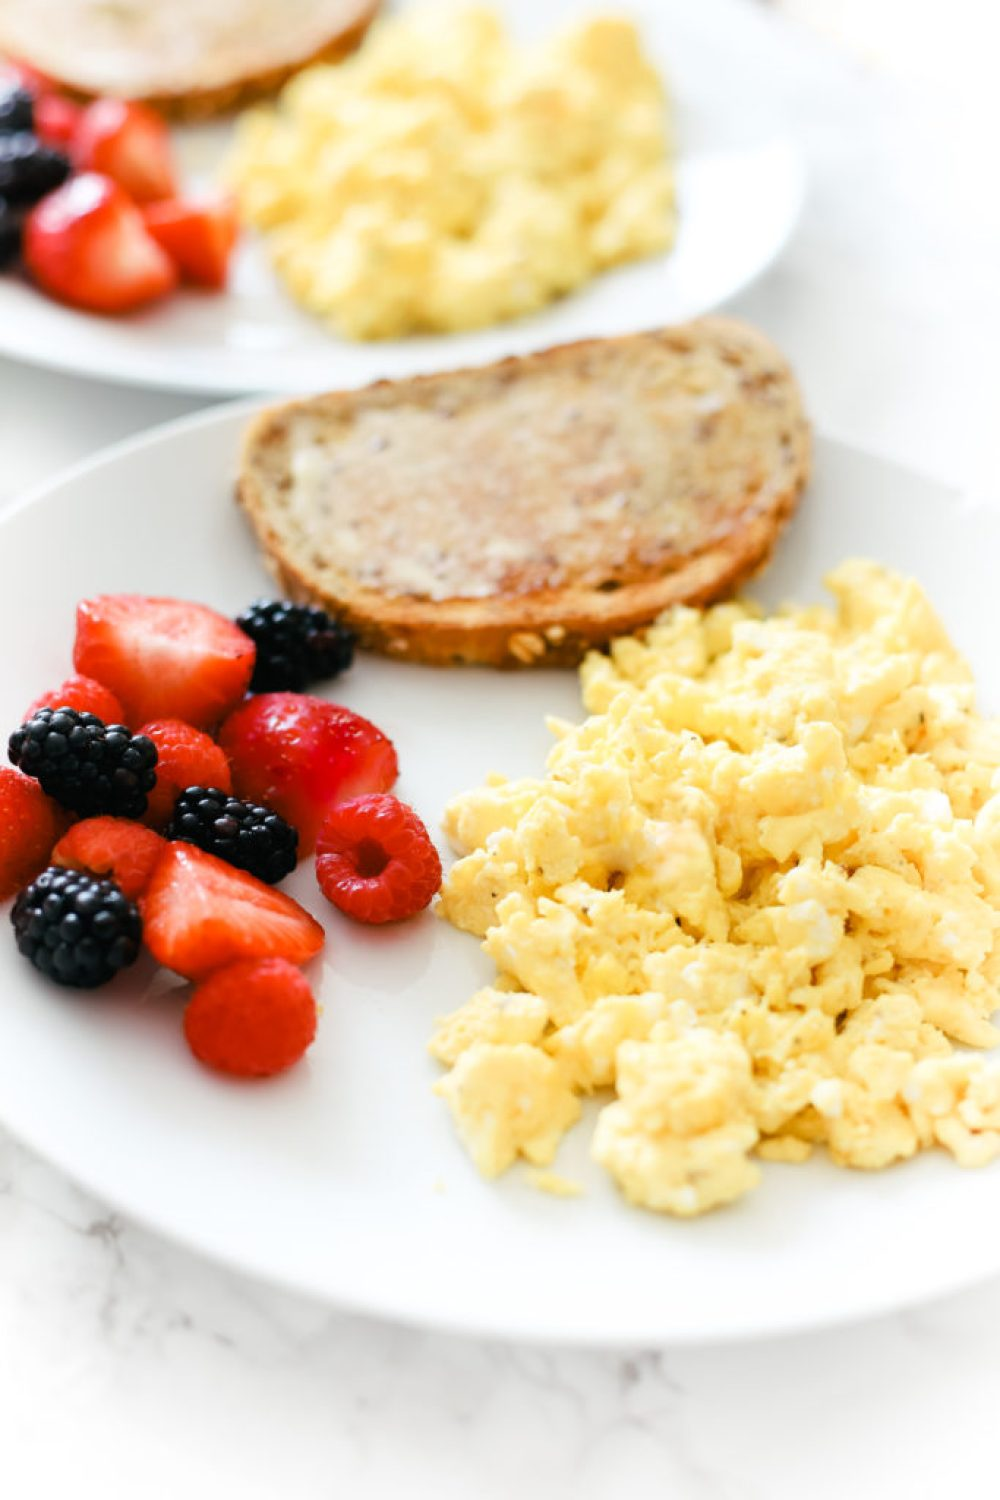 These perfect fluffy scrambled eggs make for a healthy, quick and easy breakfast every time. Naturally low in carbs, keto, and gluten-free.Breakfast | Brunch | Cooked Eggs | Keto Eggs | One Pan Breakfast | Creamy Eggs | Healthy | Weight Loss | How to Scramble Eggs | The Best Scrambled Egg Recipe | Family Friendly Recipe | Traditional Eggs | Egg Recipes | Toddler Food | Kid Friendly | Recipes for Kids |